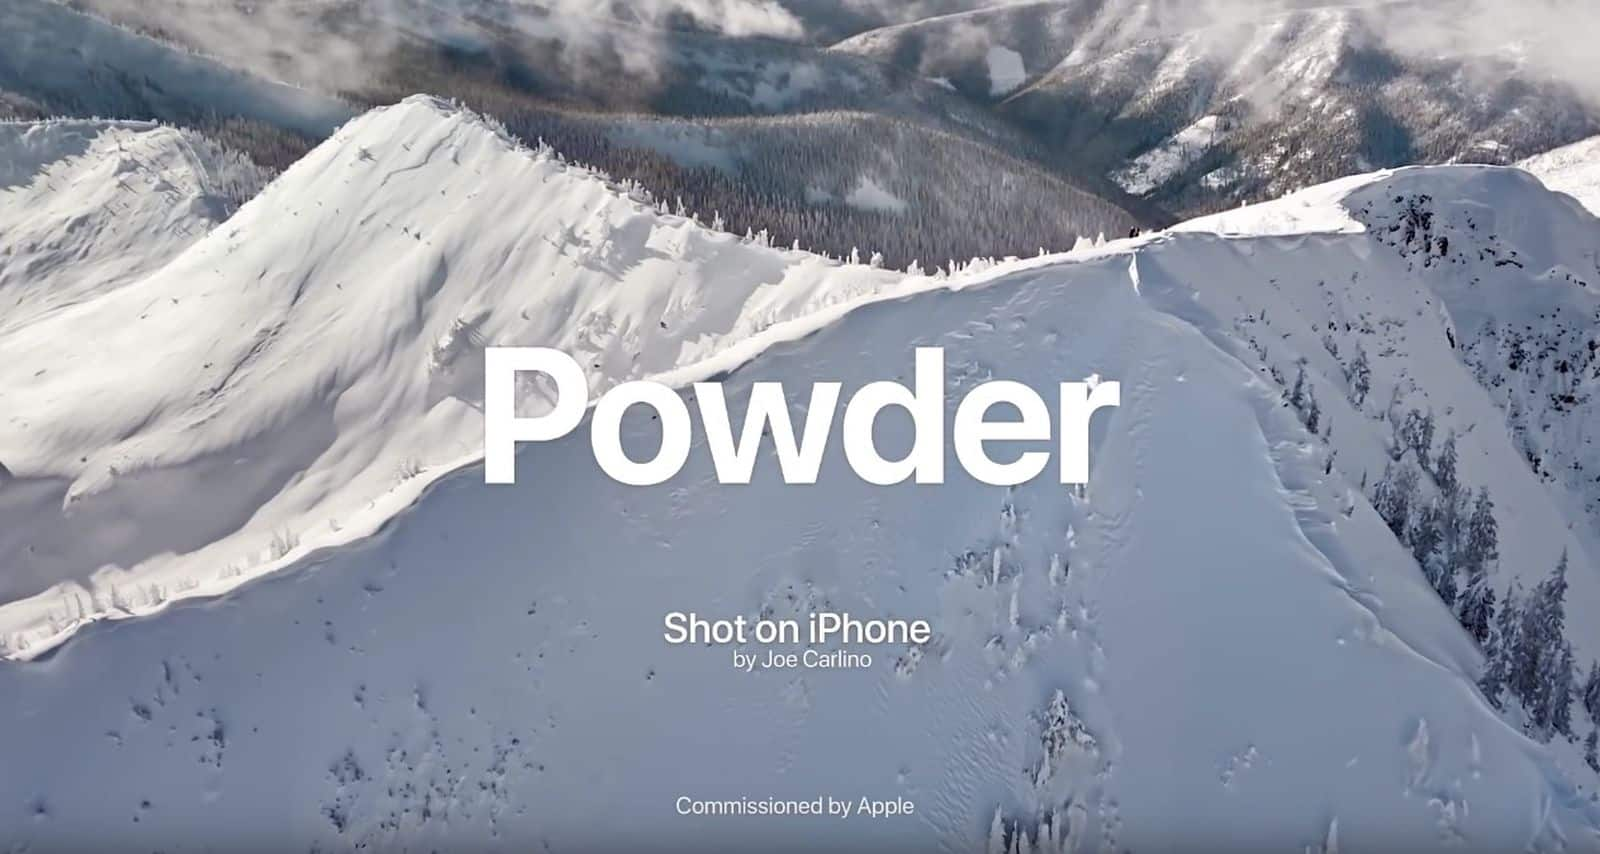 New Shot on iPhone video 'Powder' now available